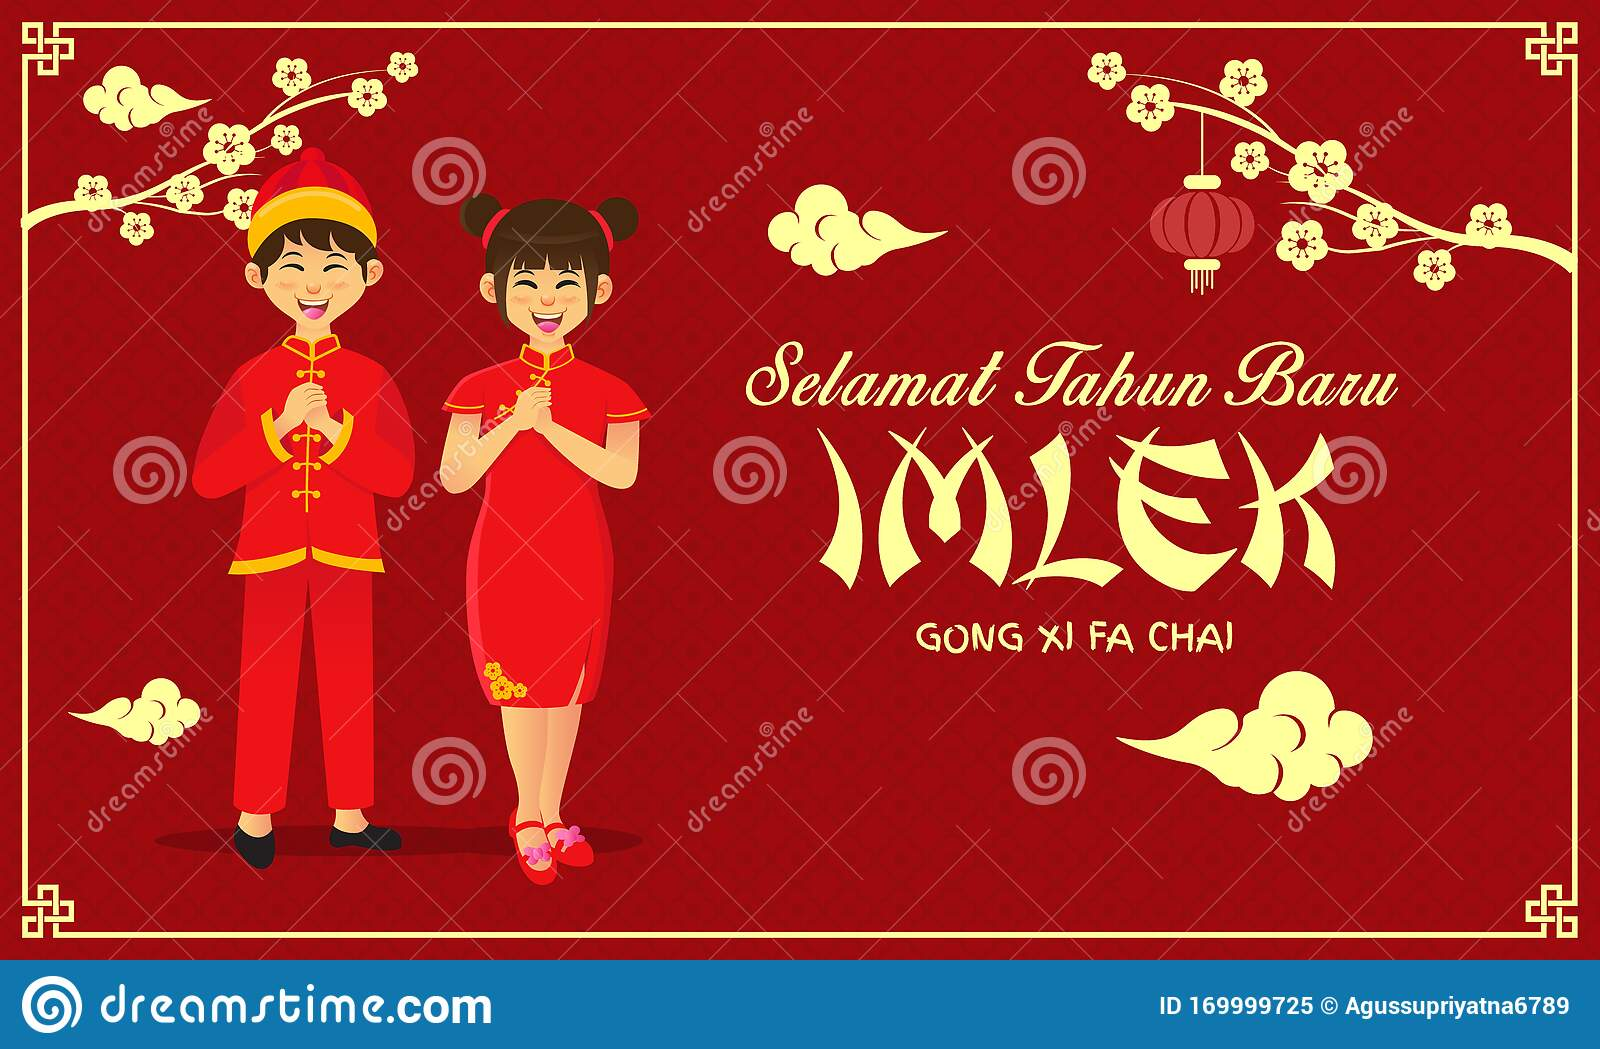 Selamat Tahun Baru Imlek Is Another Language Of Happy Chinese New Year In Indonesian Stock Vector Illustration Of Chinese Festival 169999725